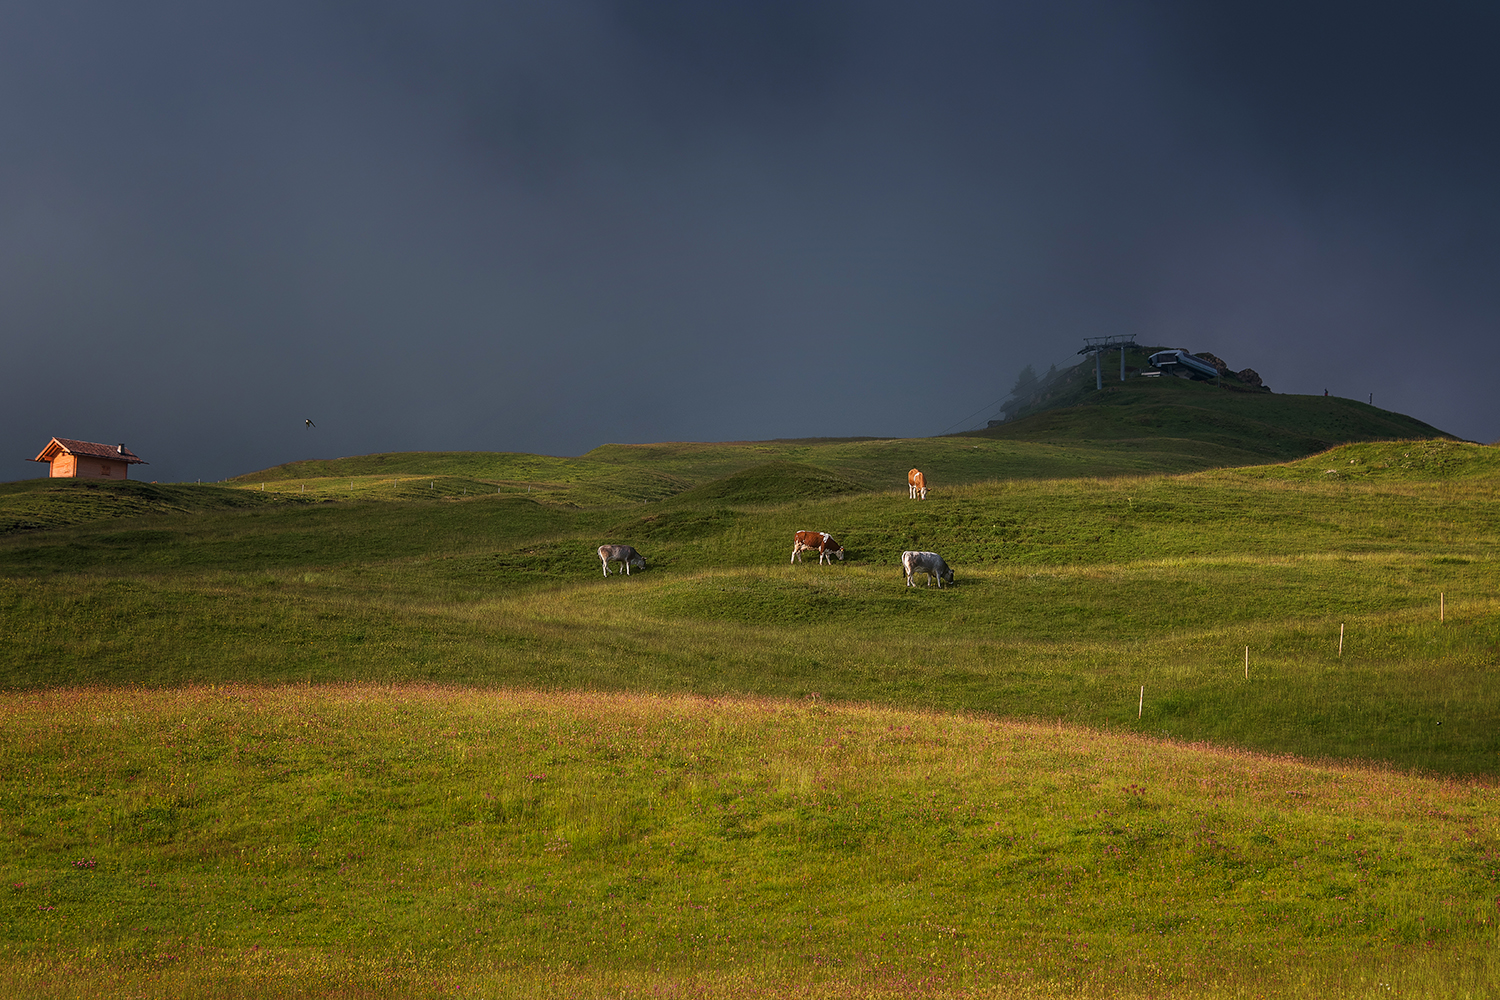 Seiser Alm on a dramatic and gloomy day example image 1